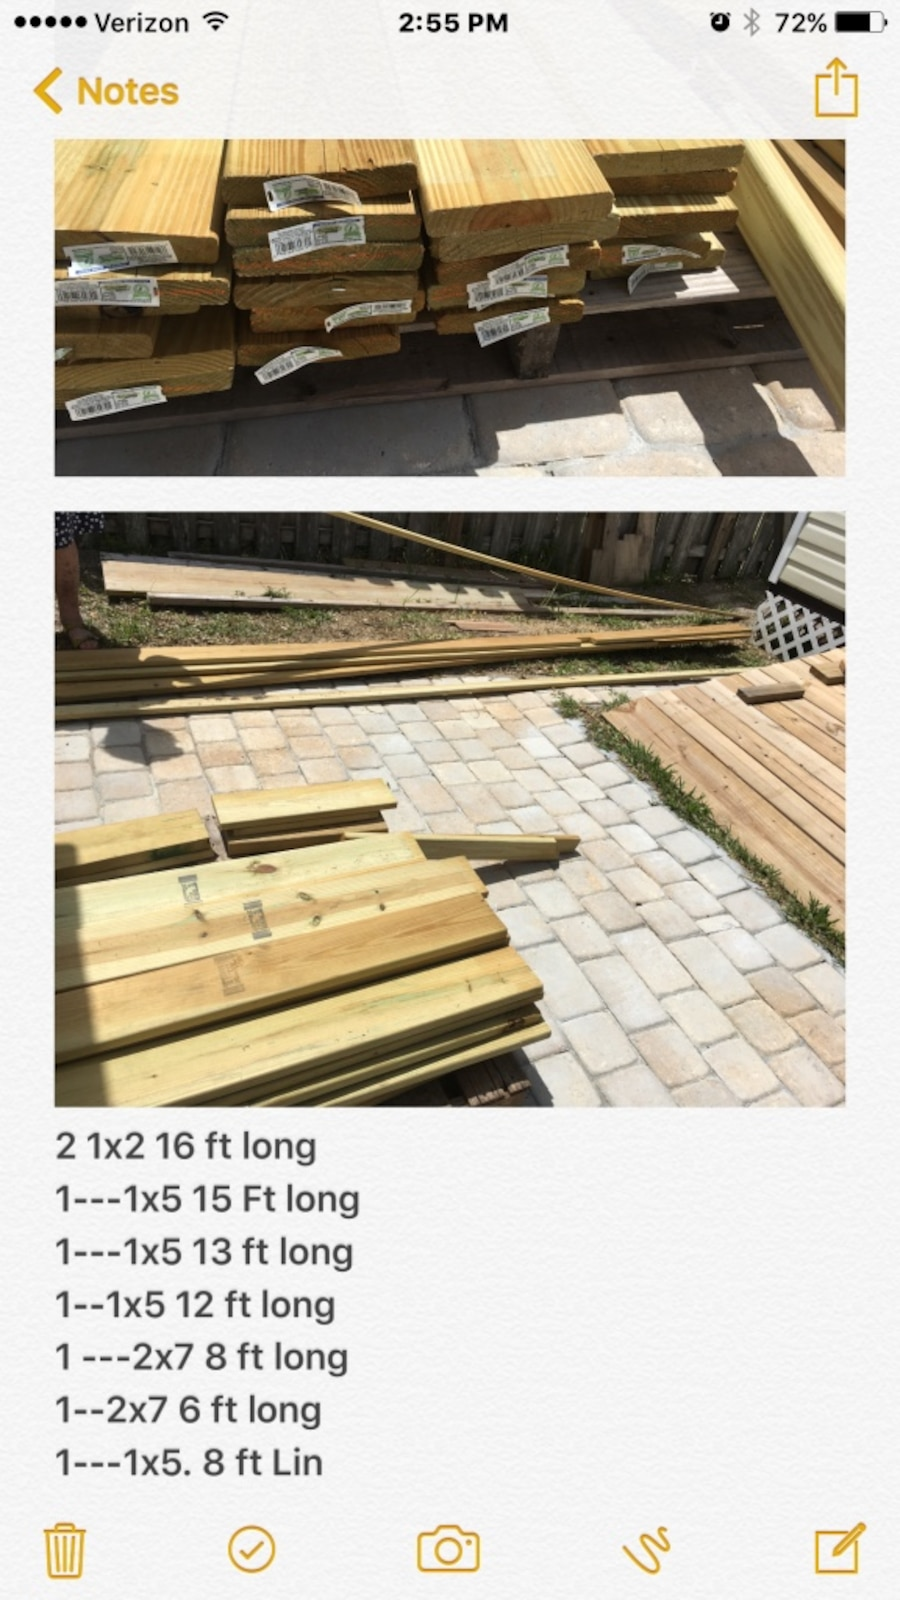 Treated wood lot - FL